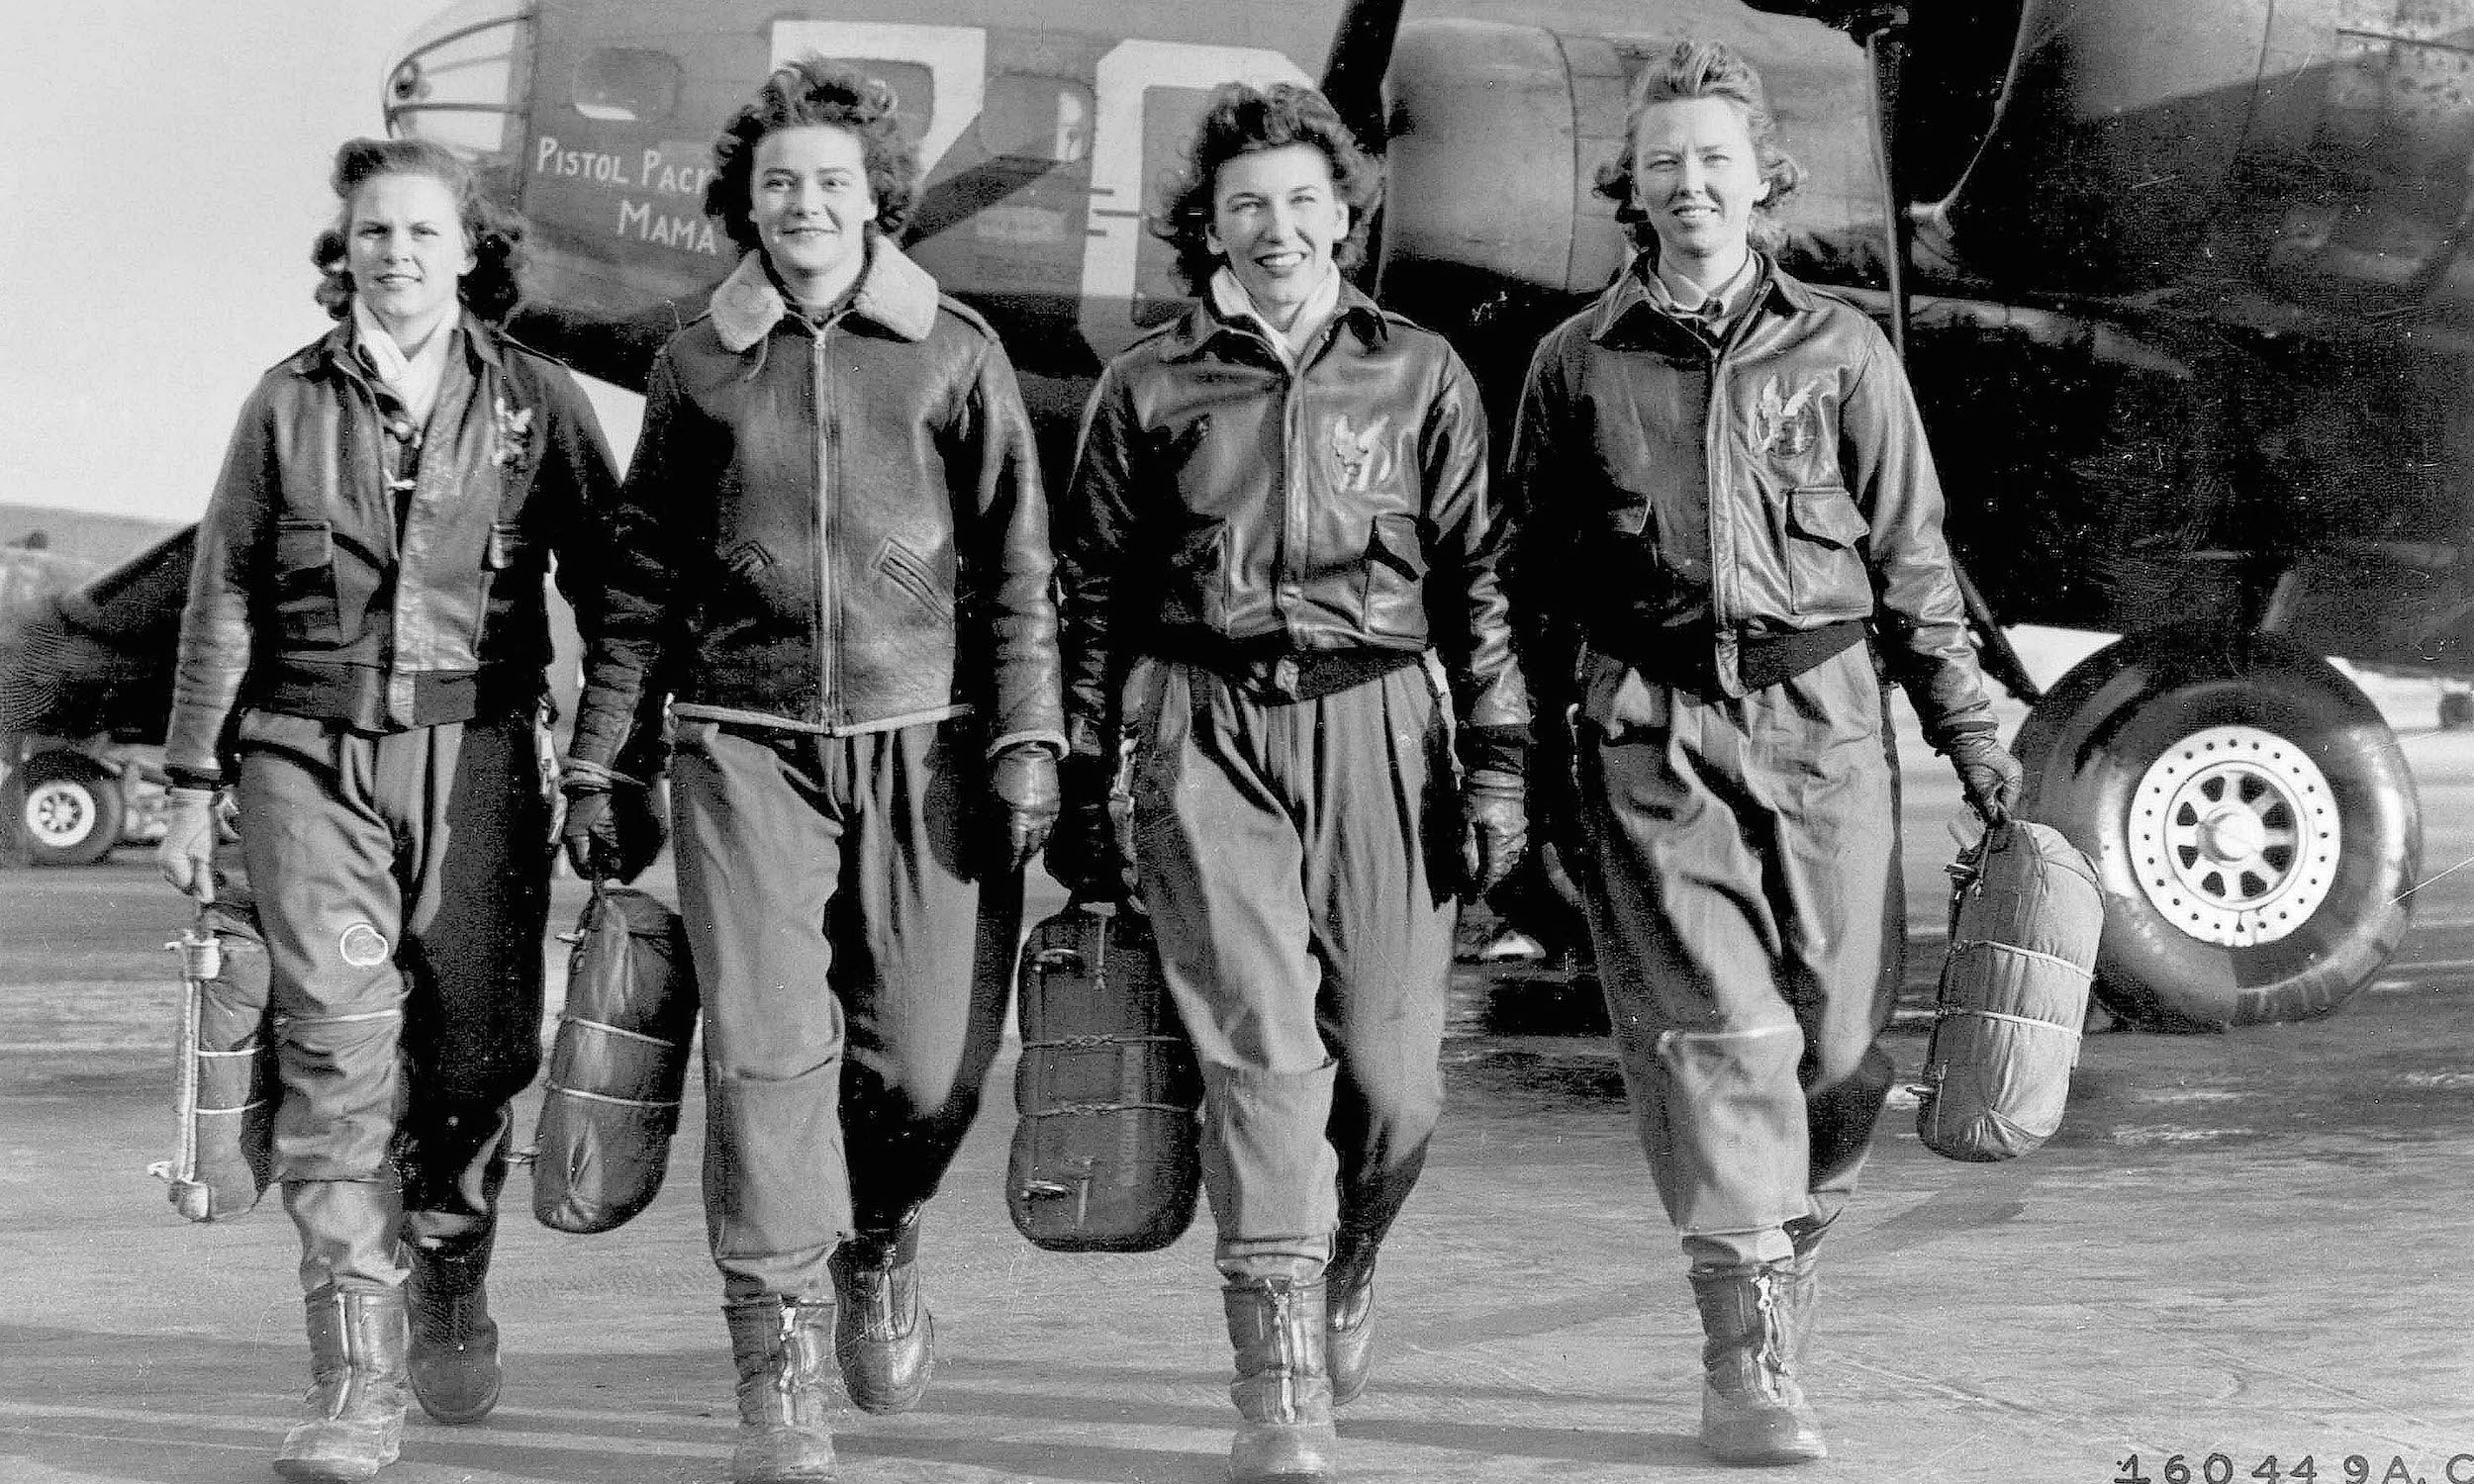 Four female pilots pose in front of a military aircraft